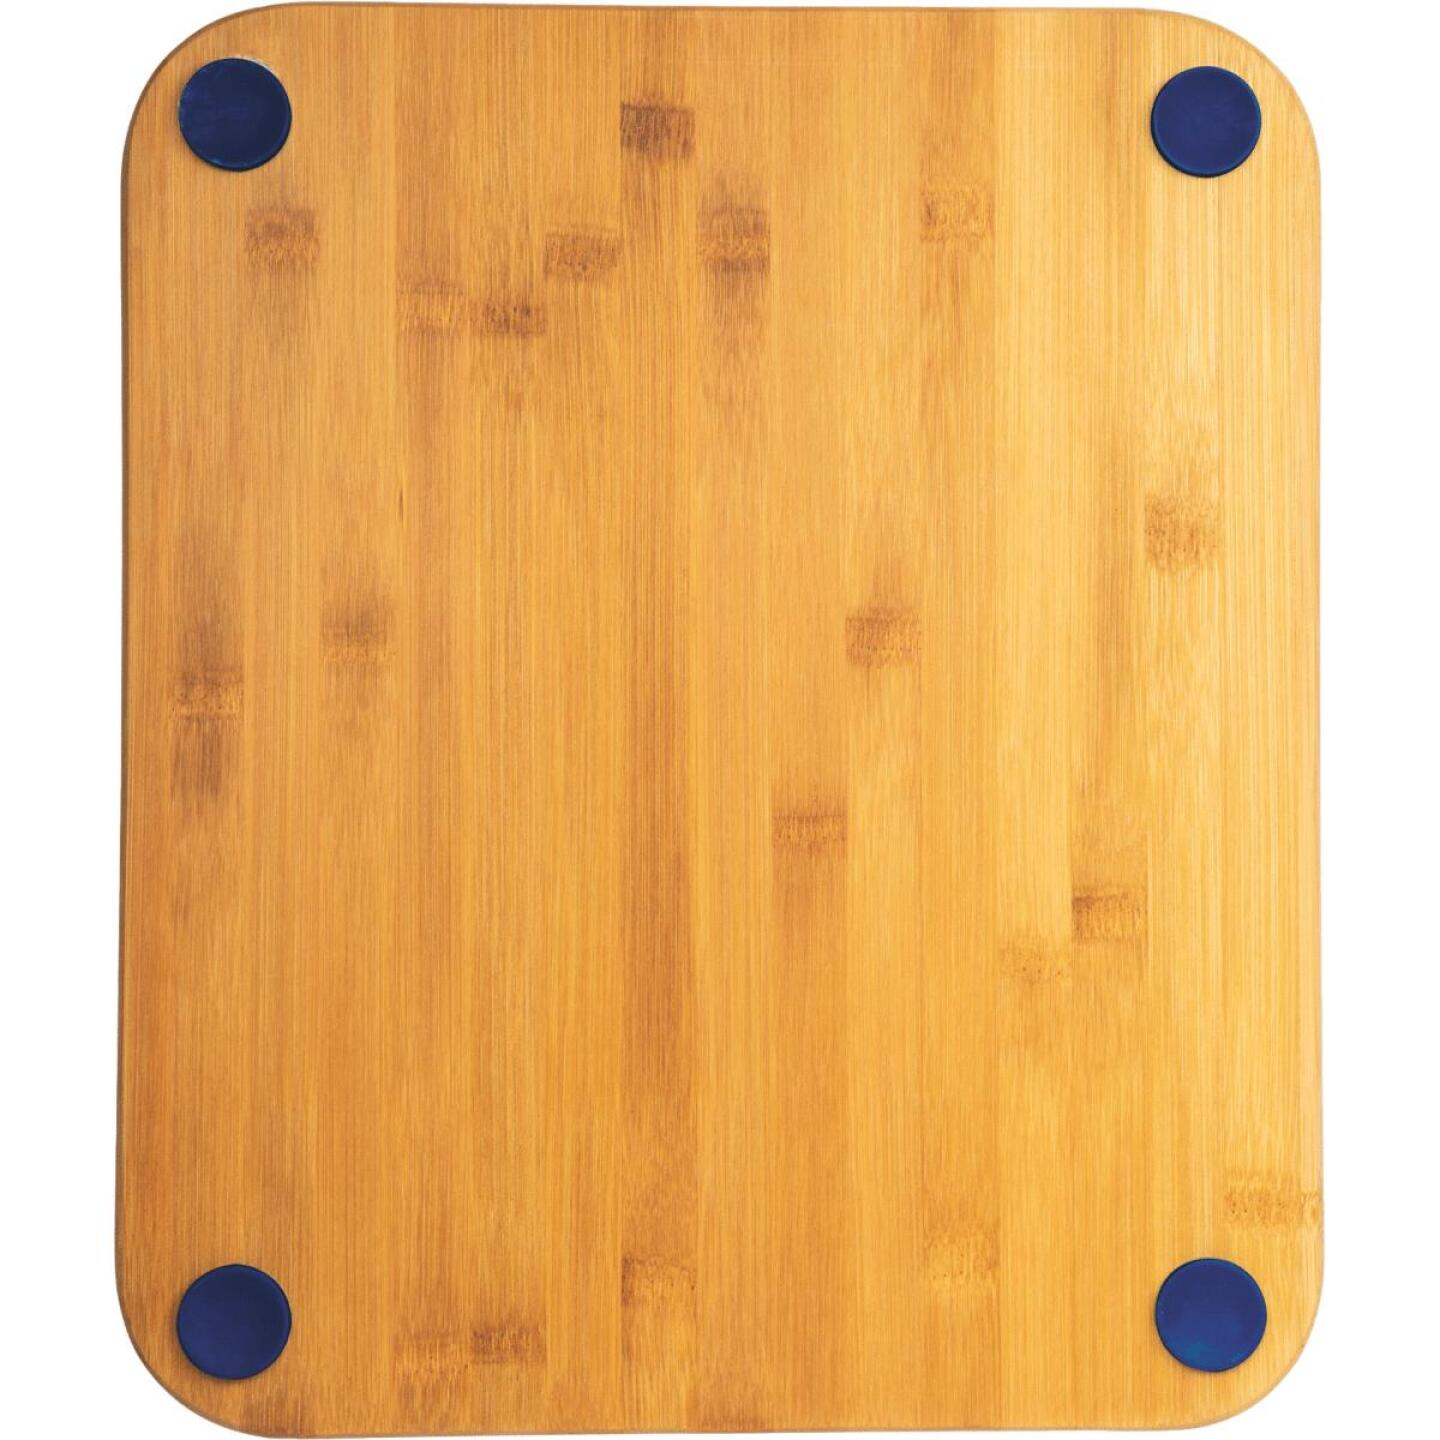 Core Natural Bamboo Sapphire 13.5 In. Foot Grip Cutting Board Image 1